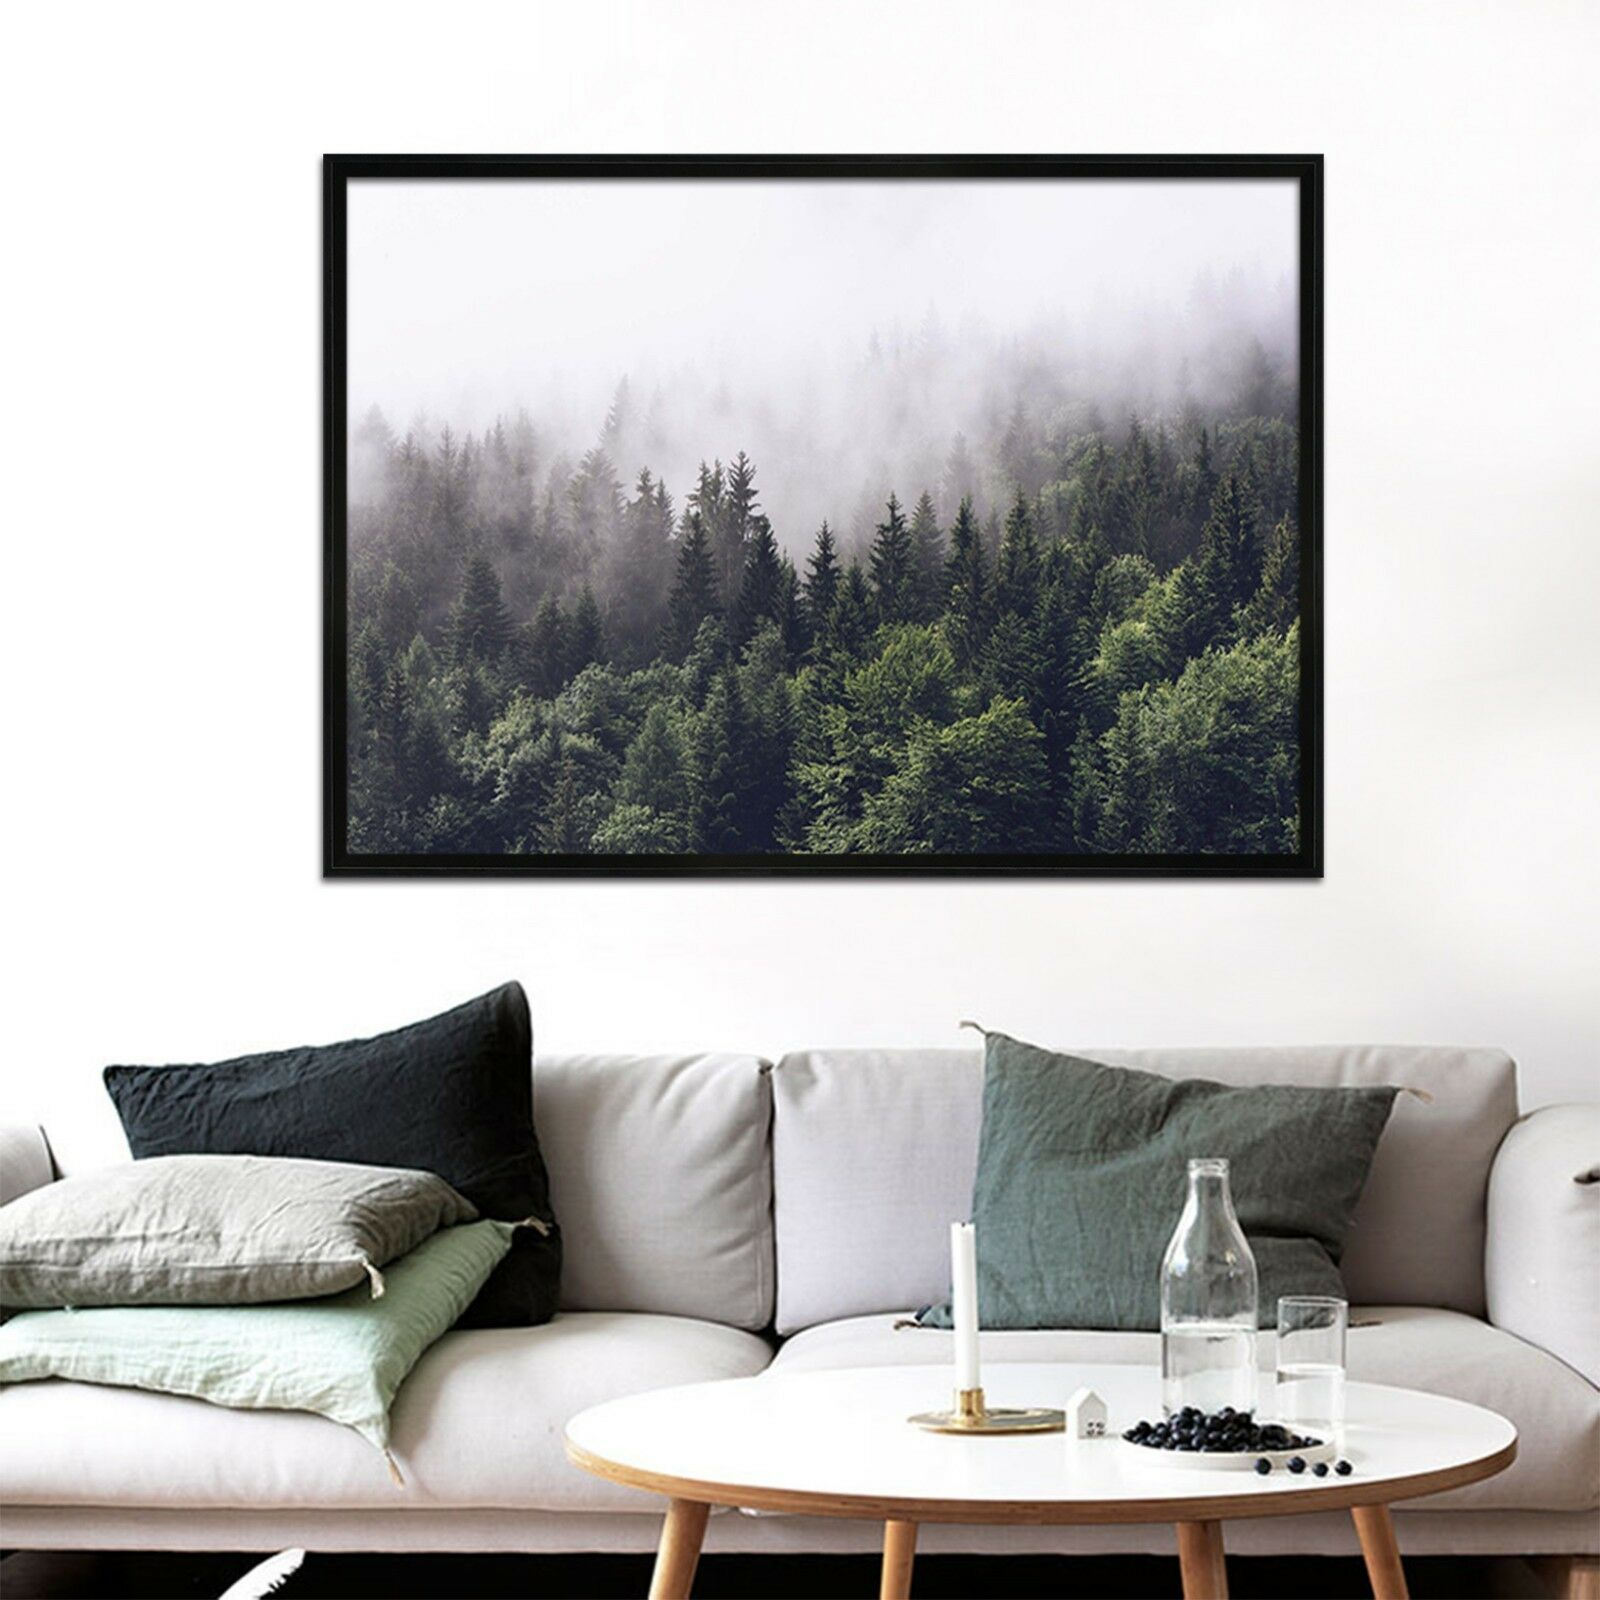 3D Forest 664 Fake Framed Poster Home Decor Print Painting Unique Art Summer